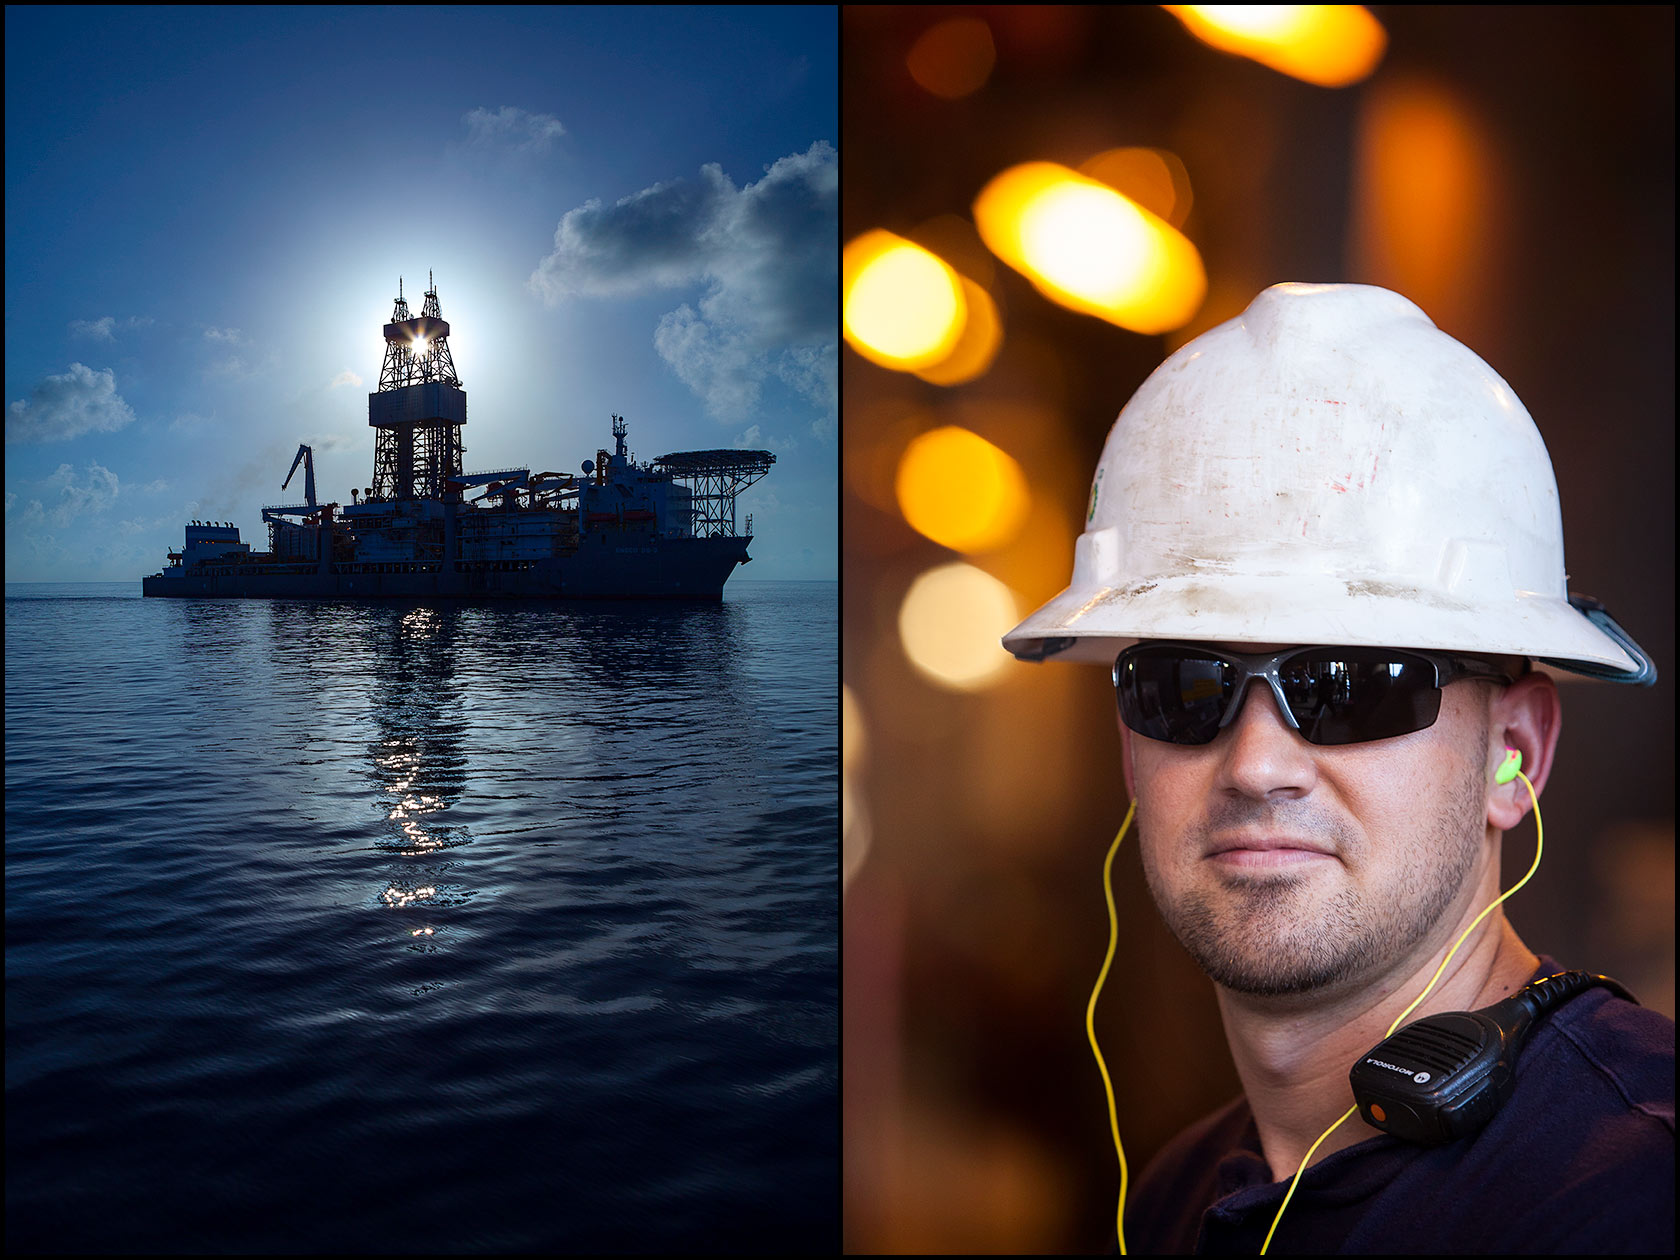 Offshore drill ship with sun behind derrick (L), Quality control tester in safety gear (PPE) on offshore rig in the Gulf of Mexico (R).